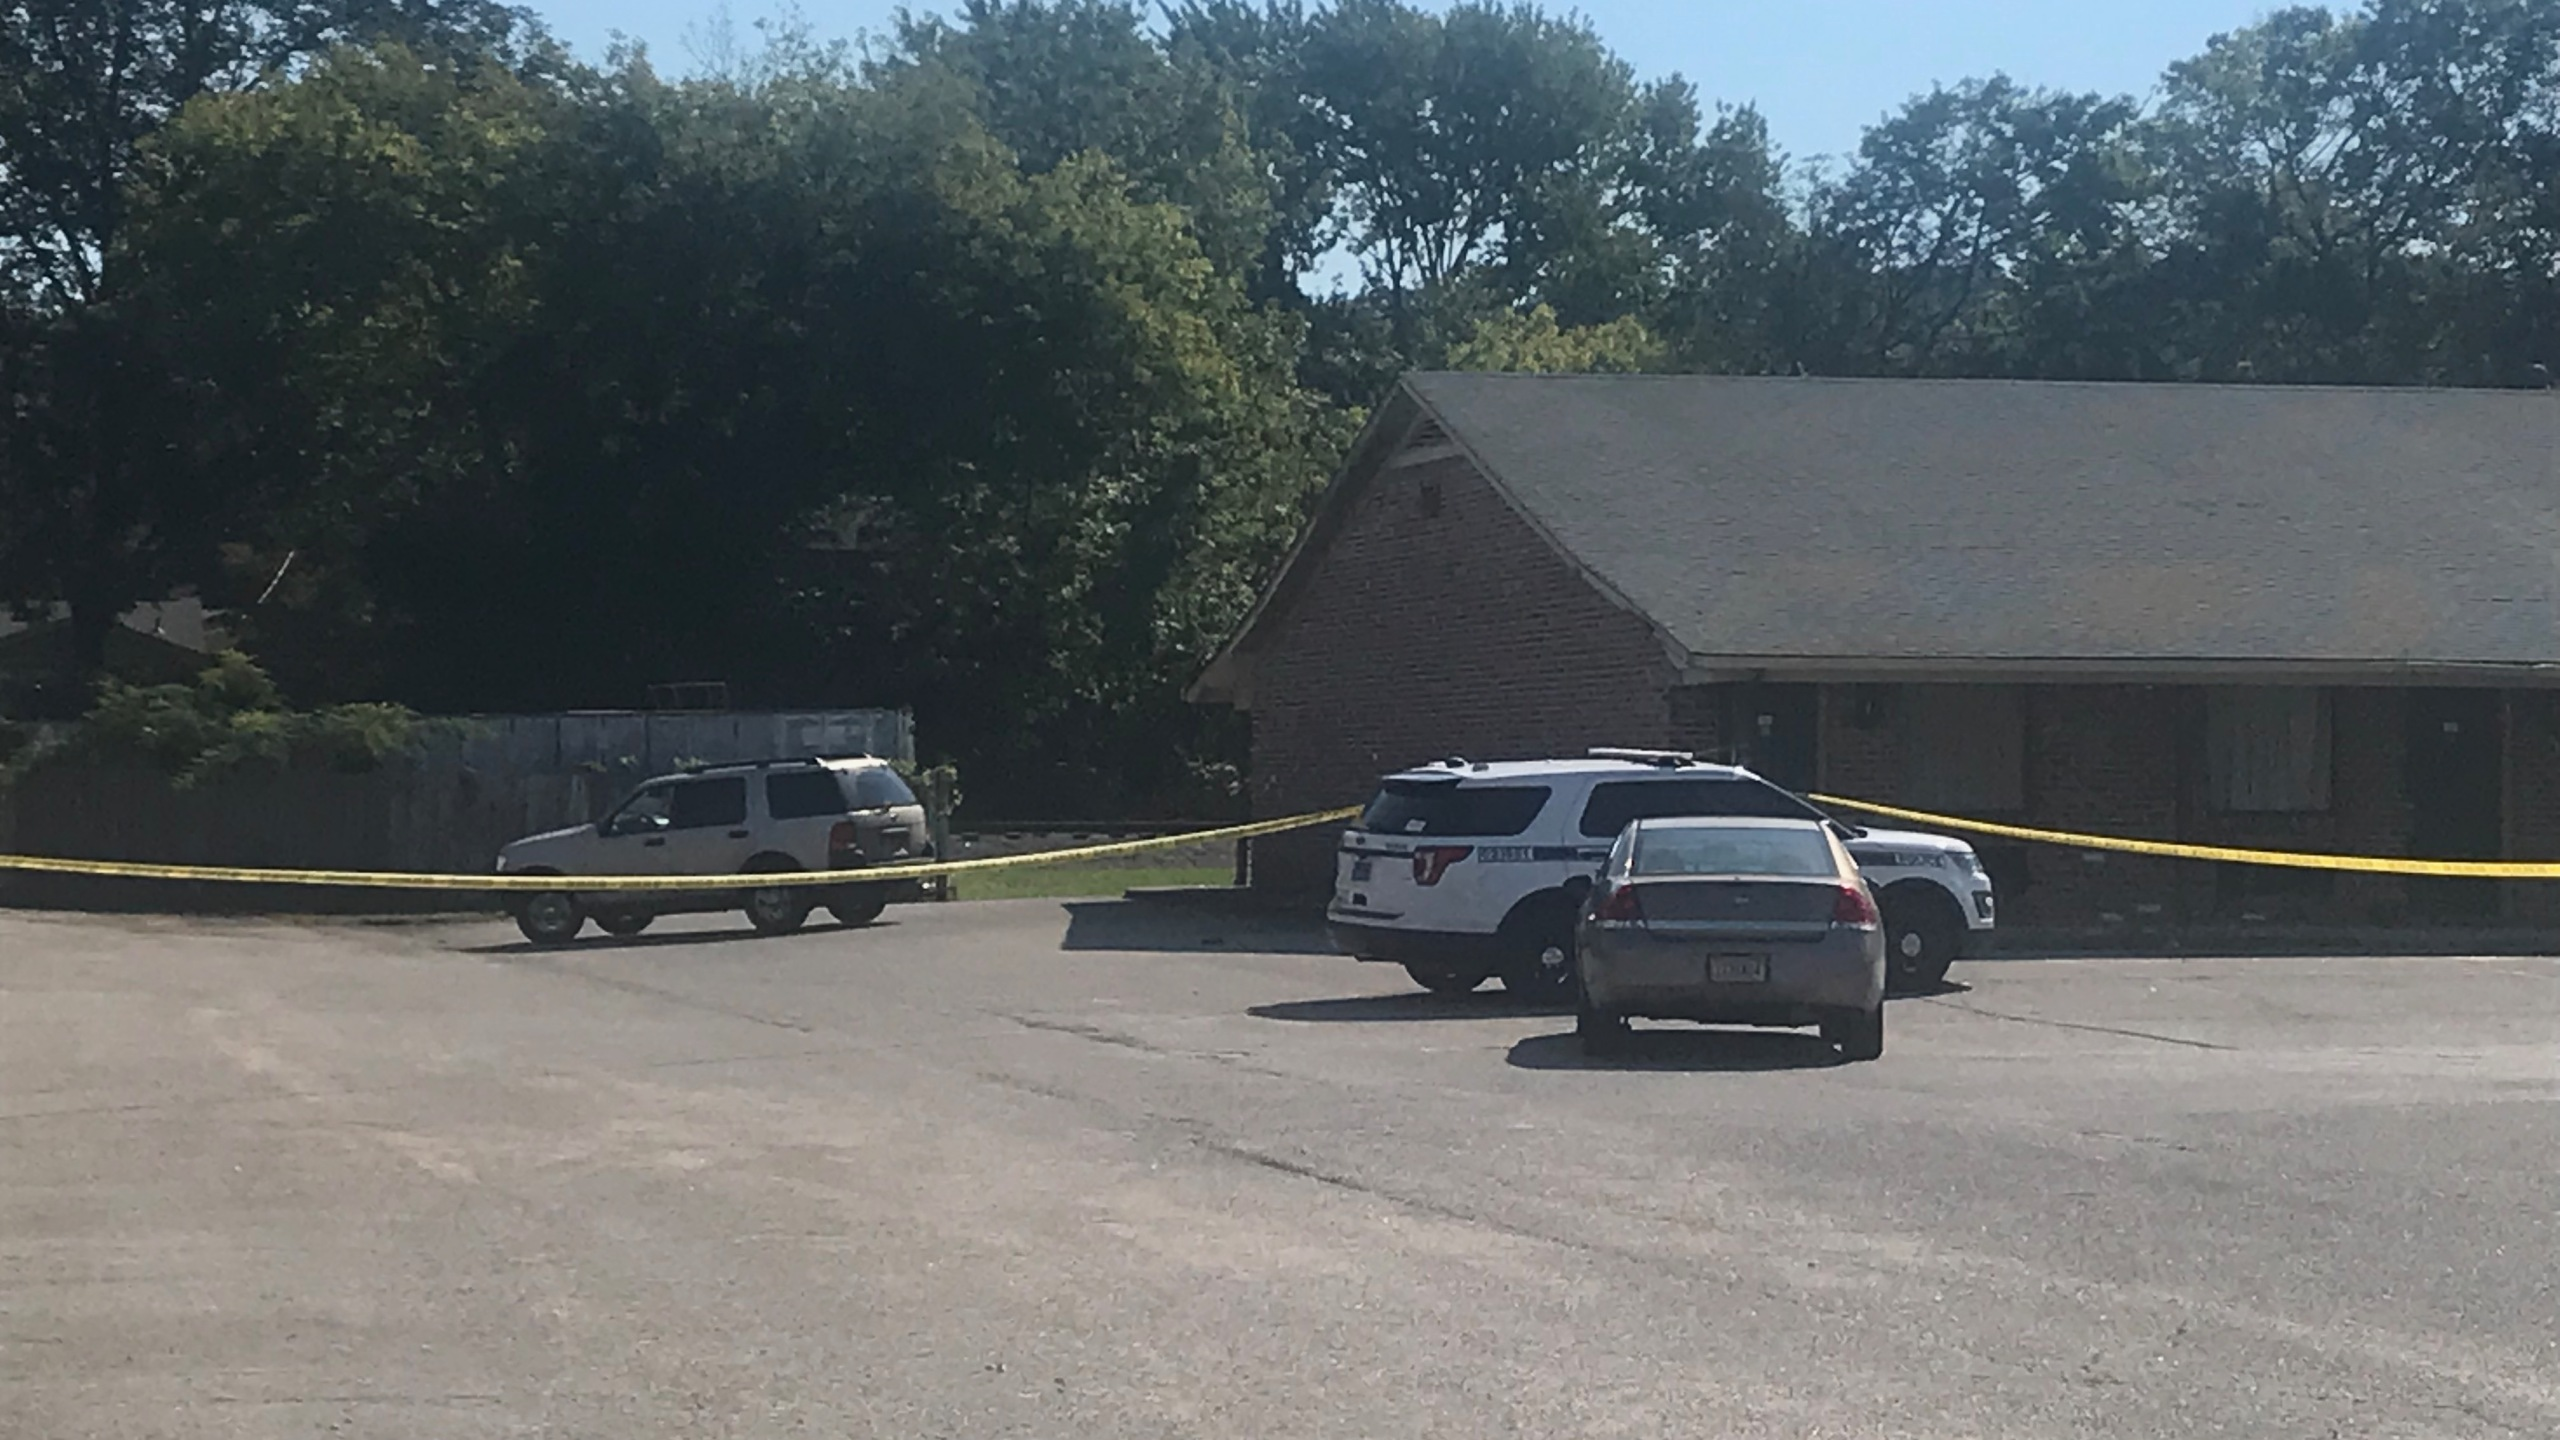 Authorities said officers were called to the King's Inn along South Memorial Parkway around 9:15 a.m. Tuesday.